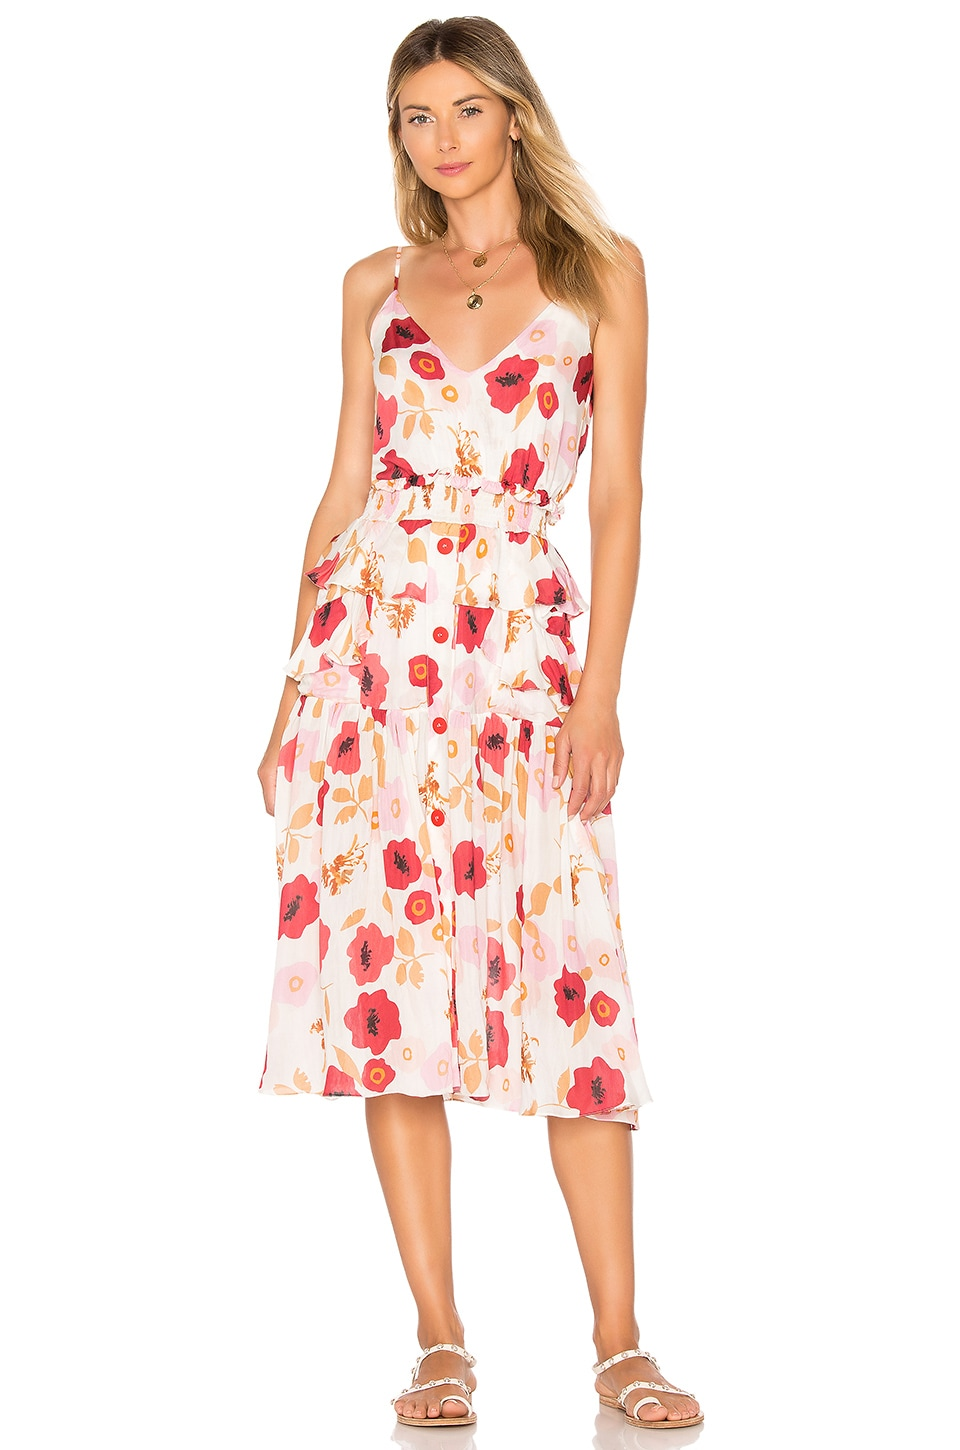 CLUBE BOSSA Ellia Midi Dress in Pepper Labeija